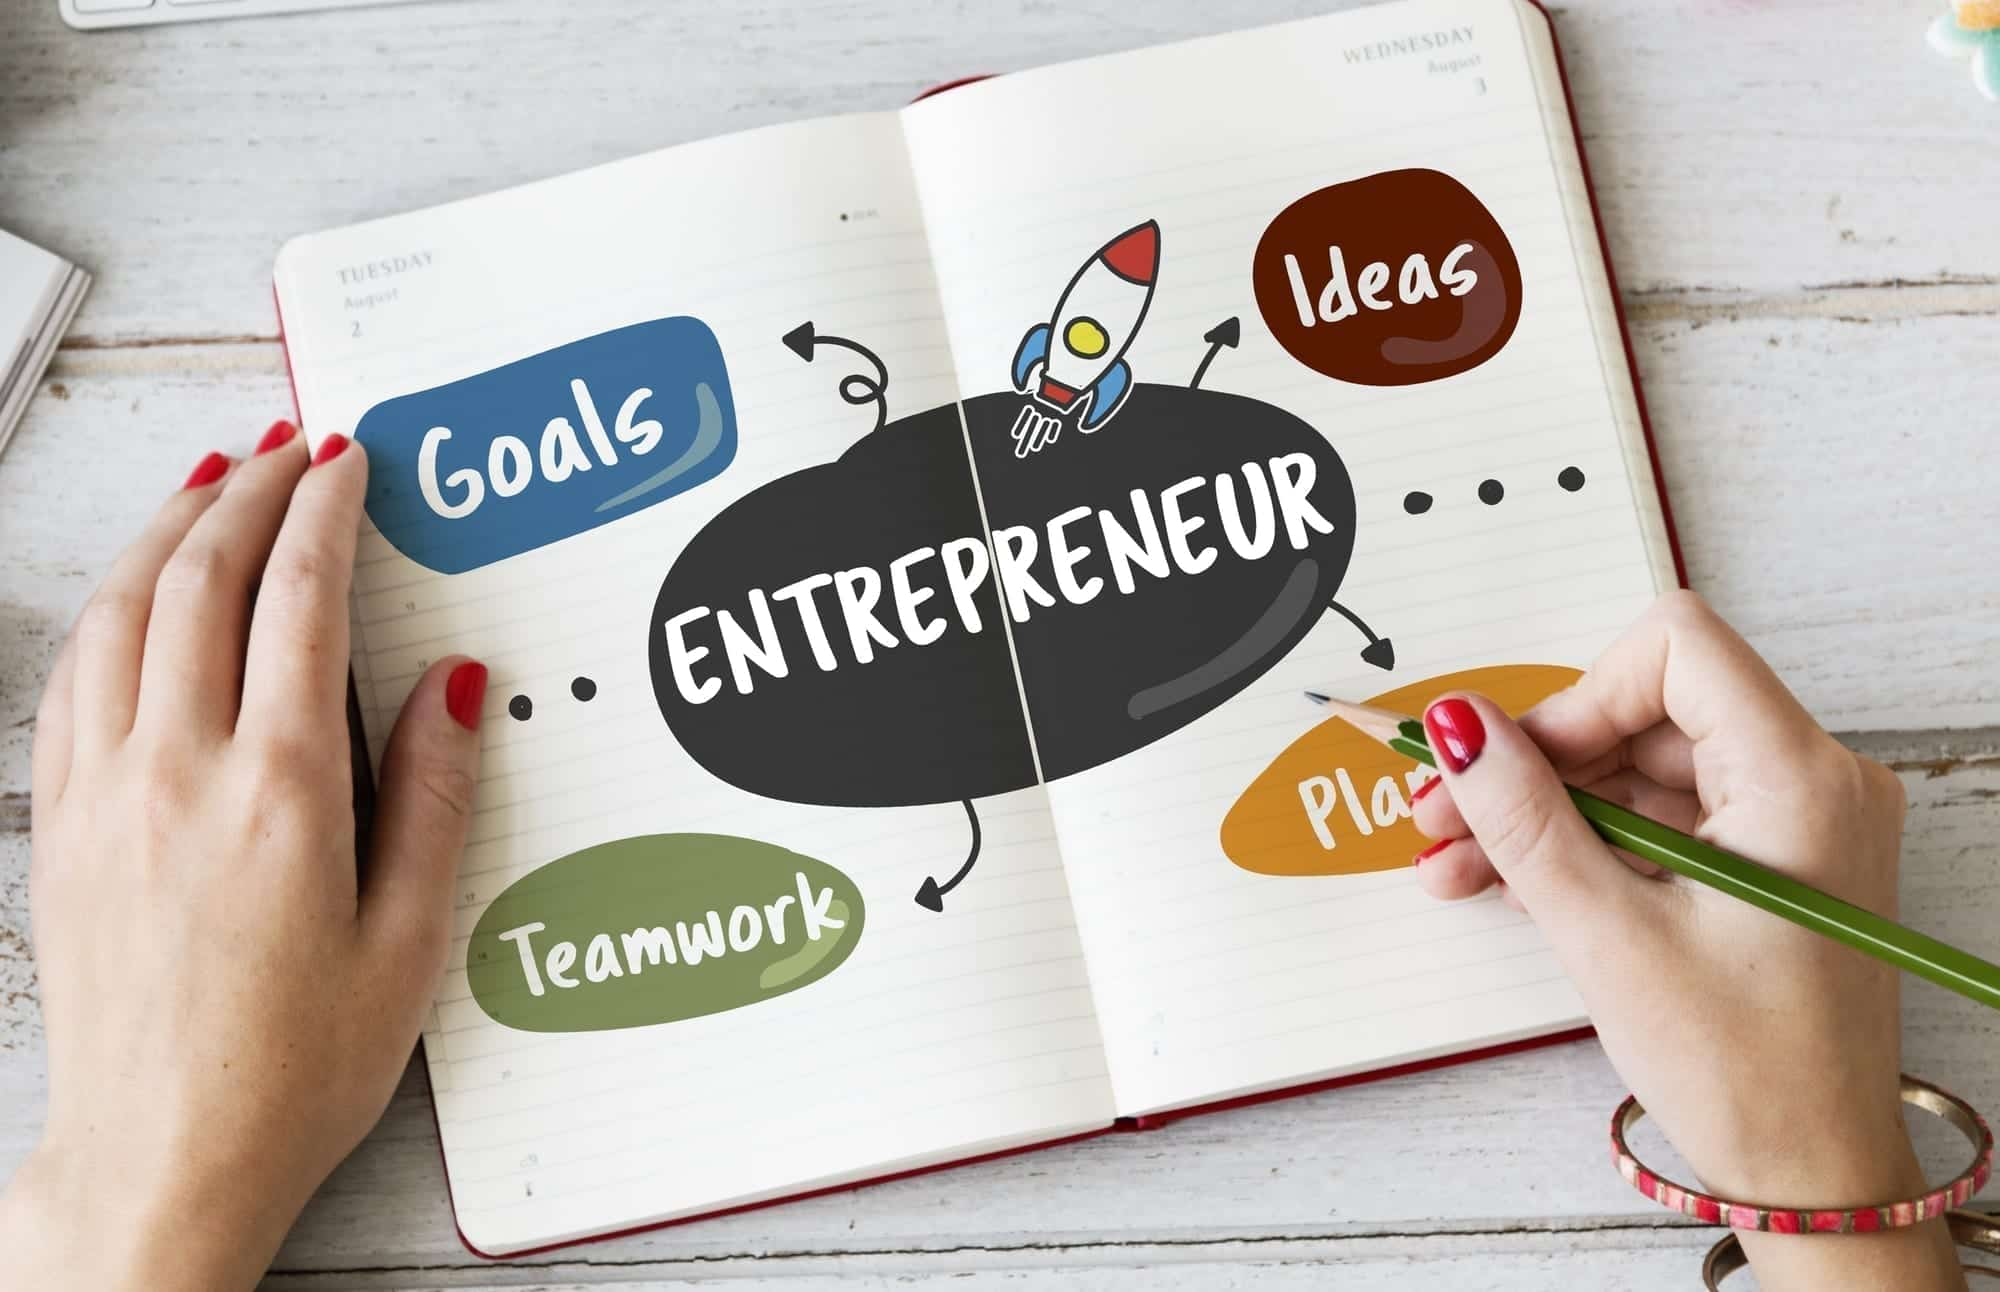 Easy Methods For Setting Business Goals